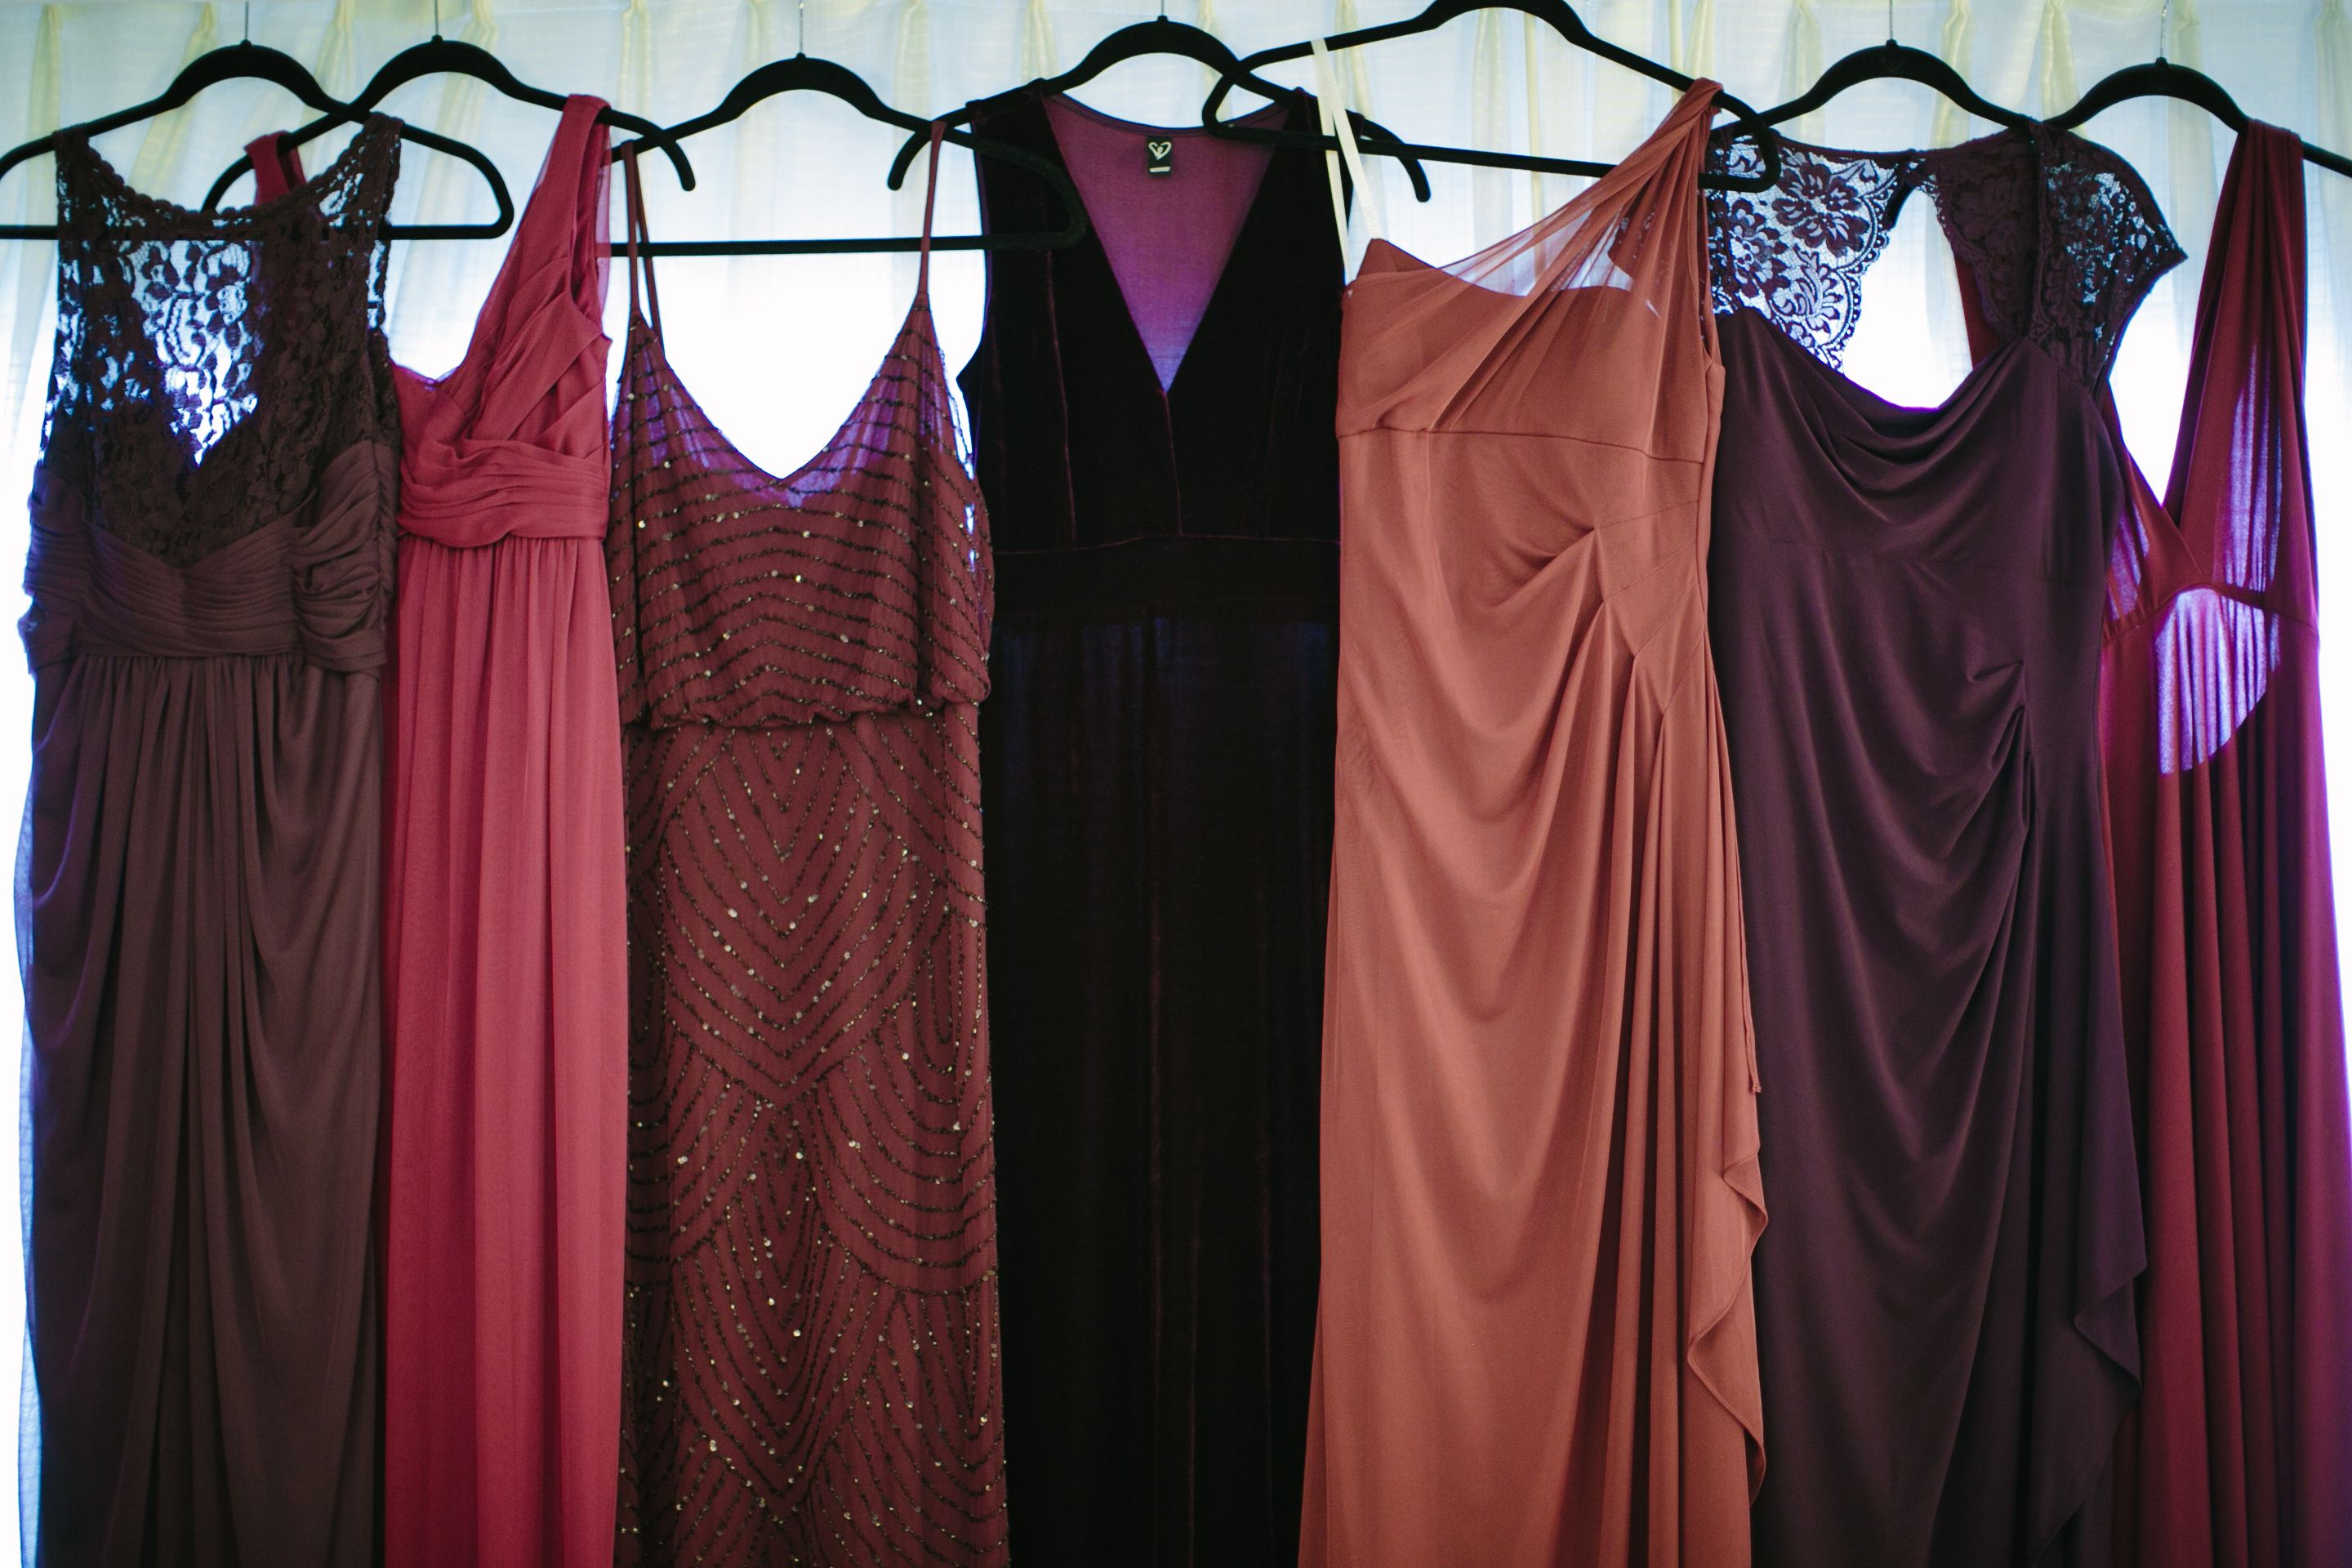 Perfectly mismatched bridesmaids! Same color family different styles ...